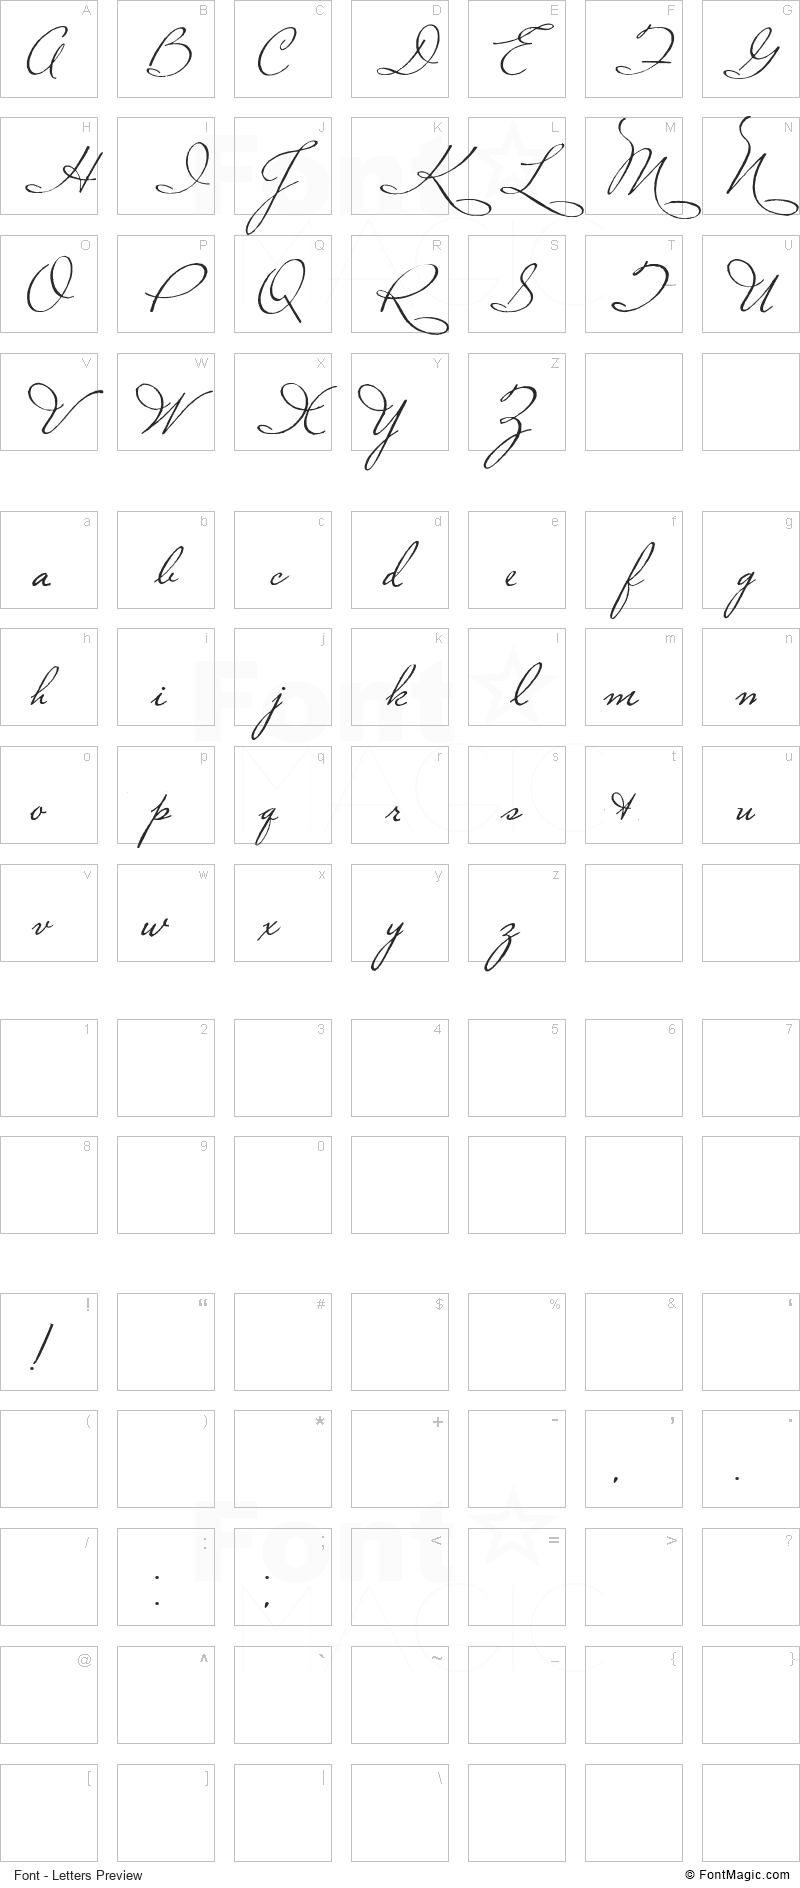 Plaster of Paris Font - All Latters Preview Chart